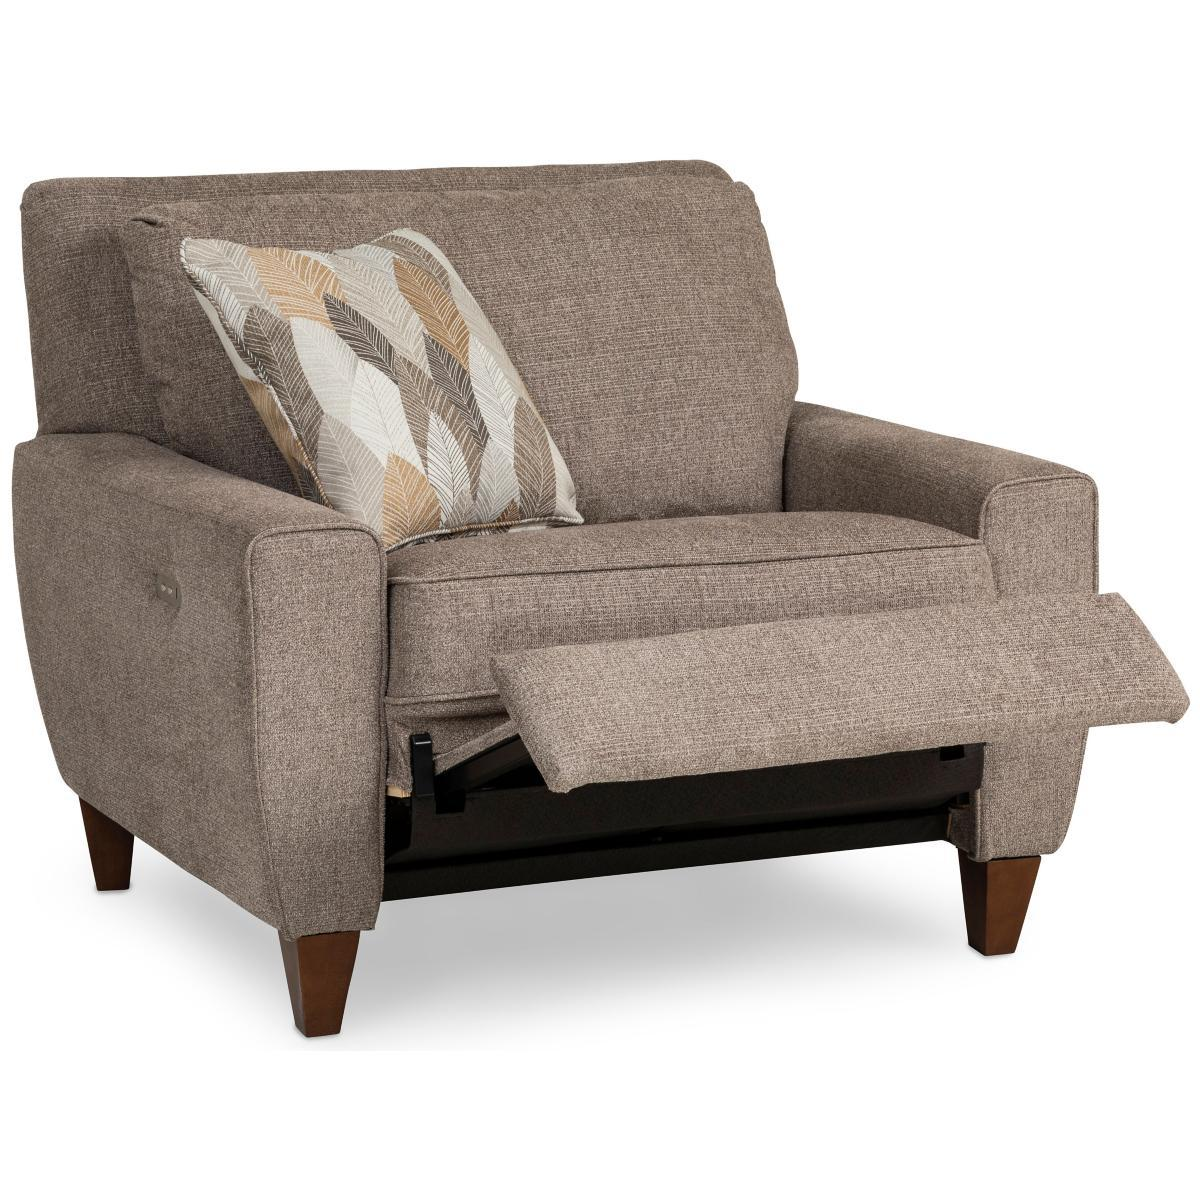 A picture containing seat, indoor, furniture, living  Description automatically generated